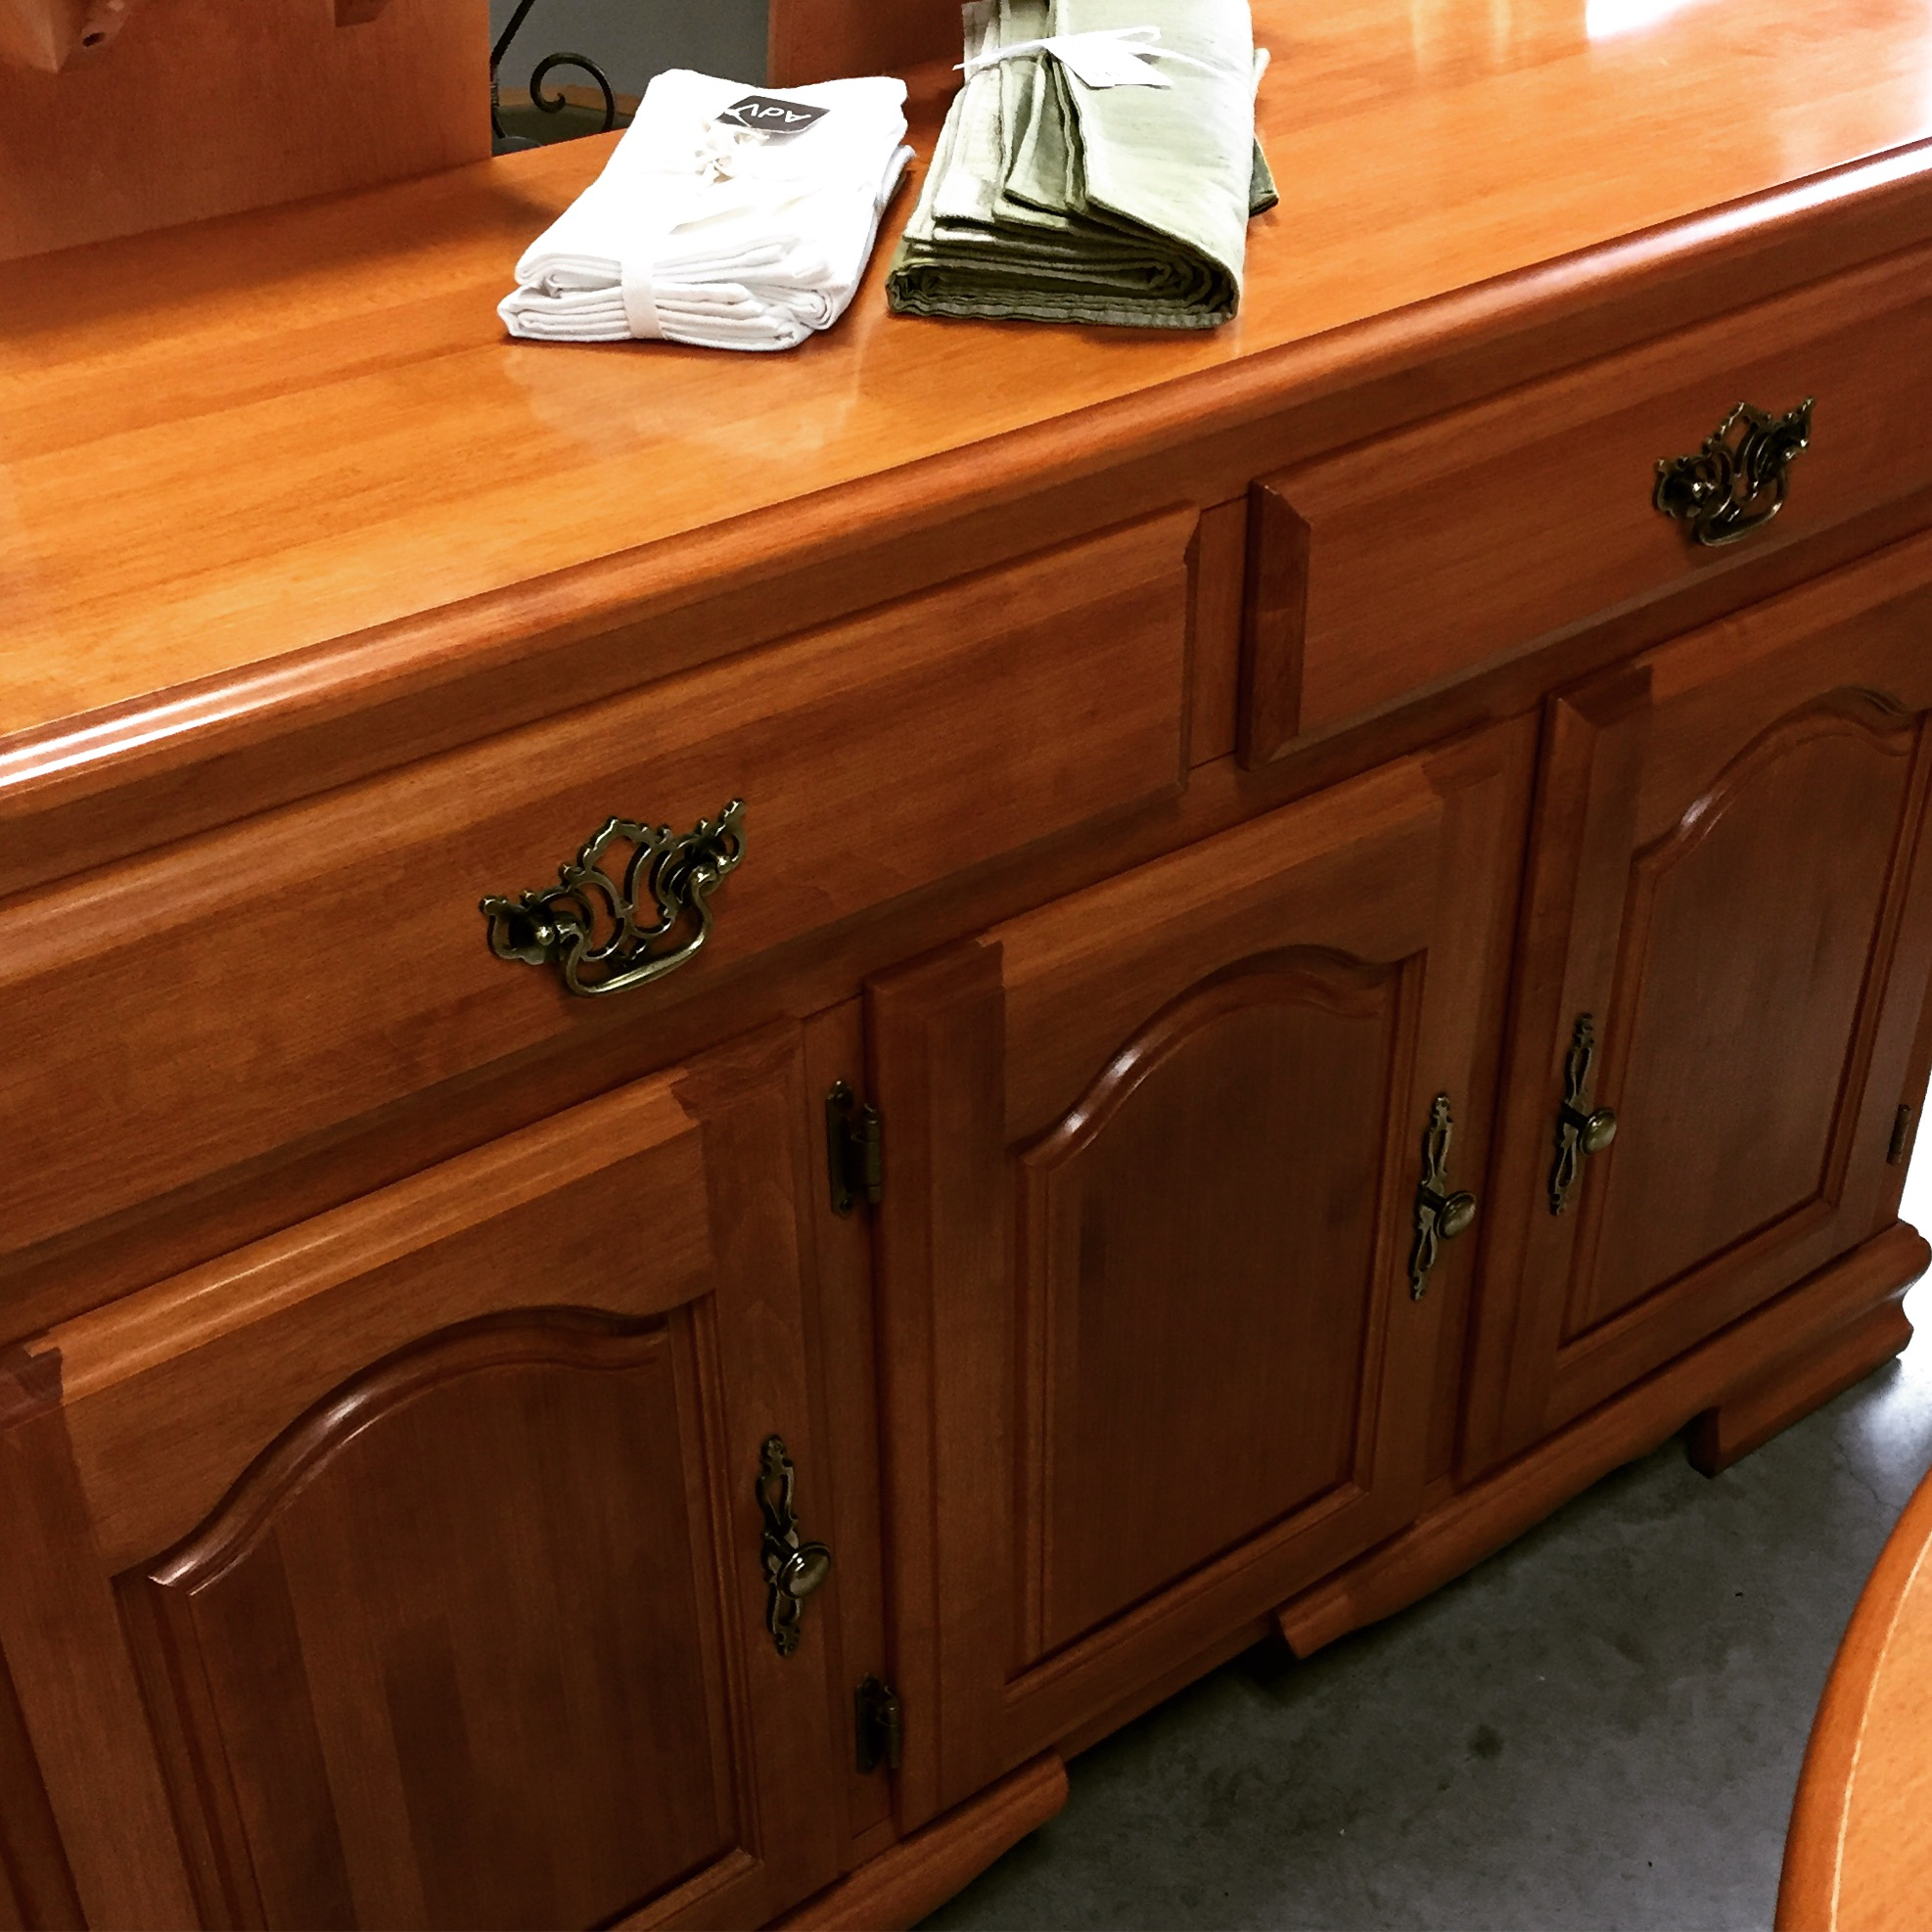 52 L X 27 D X 33 H Roxton Maple Sideboard SOLD Designsbyc